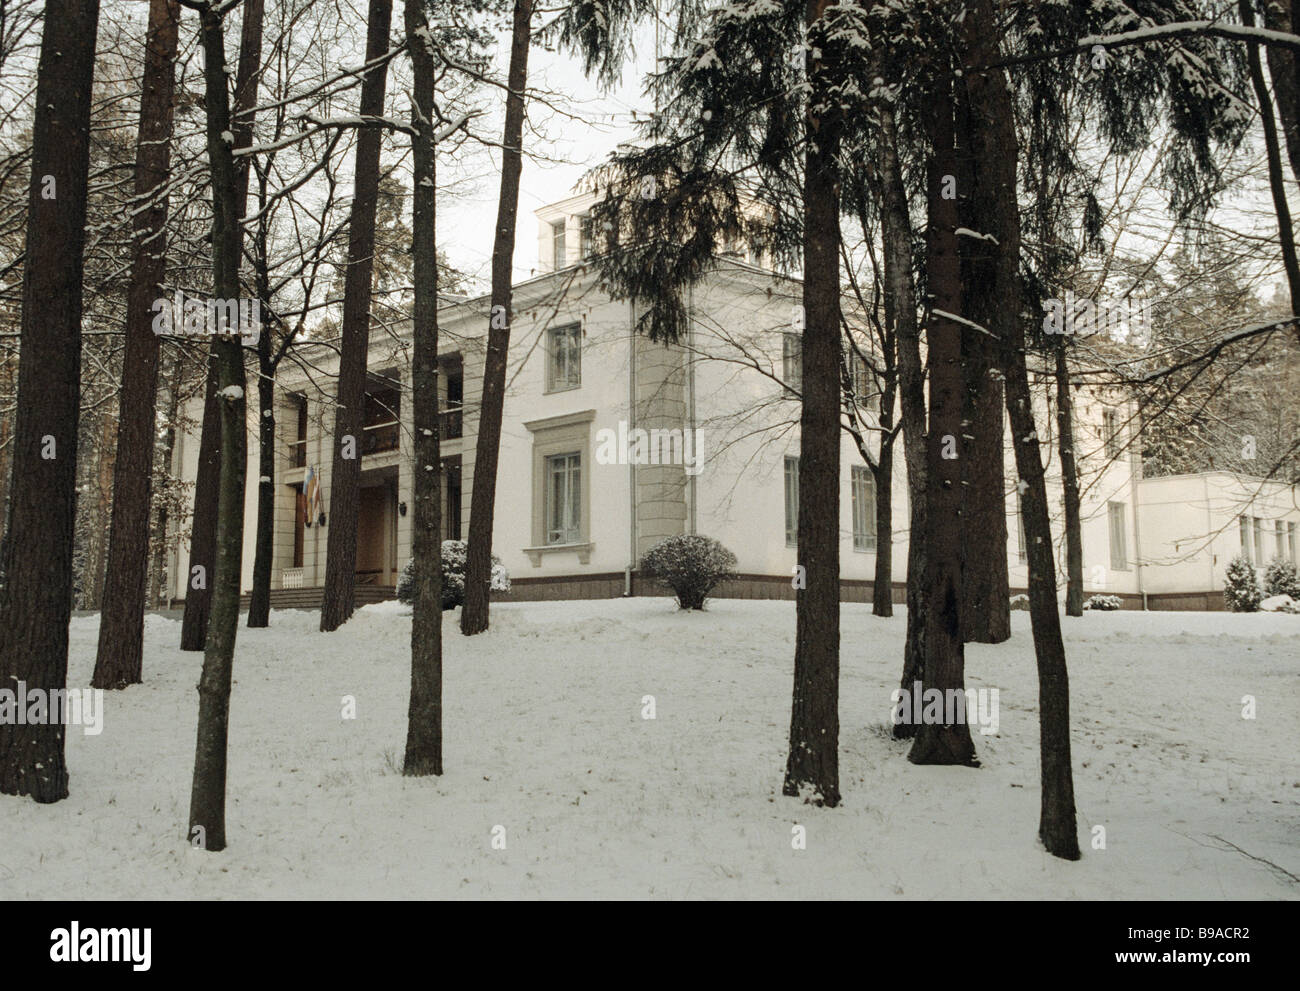 Documents on establishing the CIS were signed here Belovezhskaya Pushcha Viskuli December 8 1991 - Stock Image